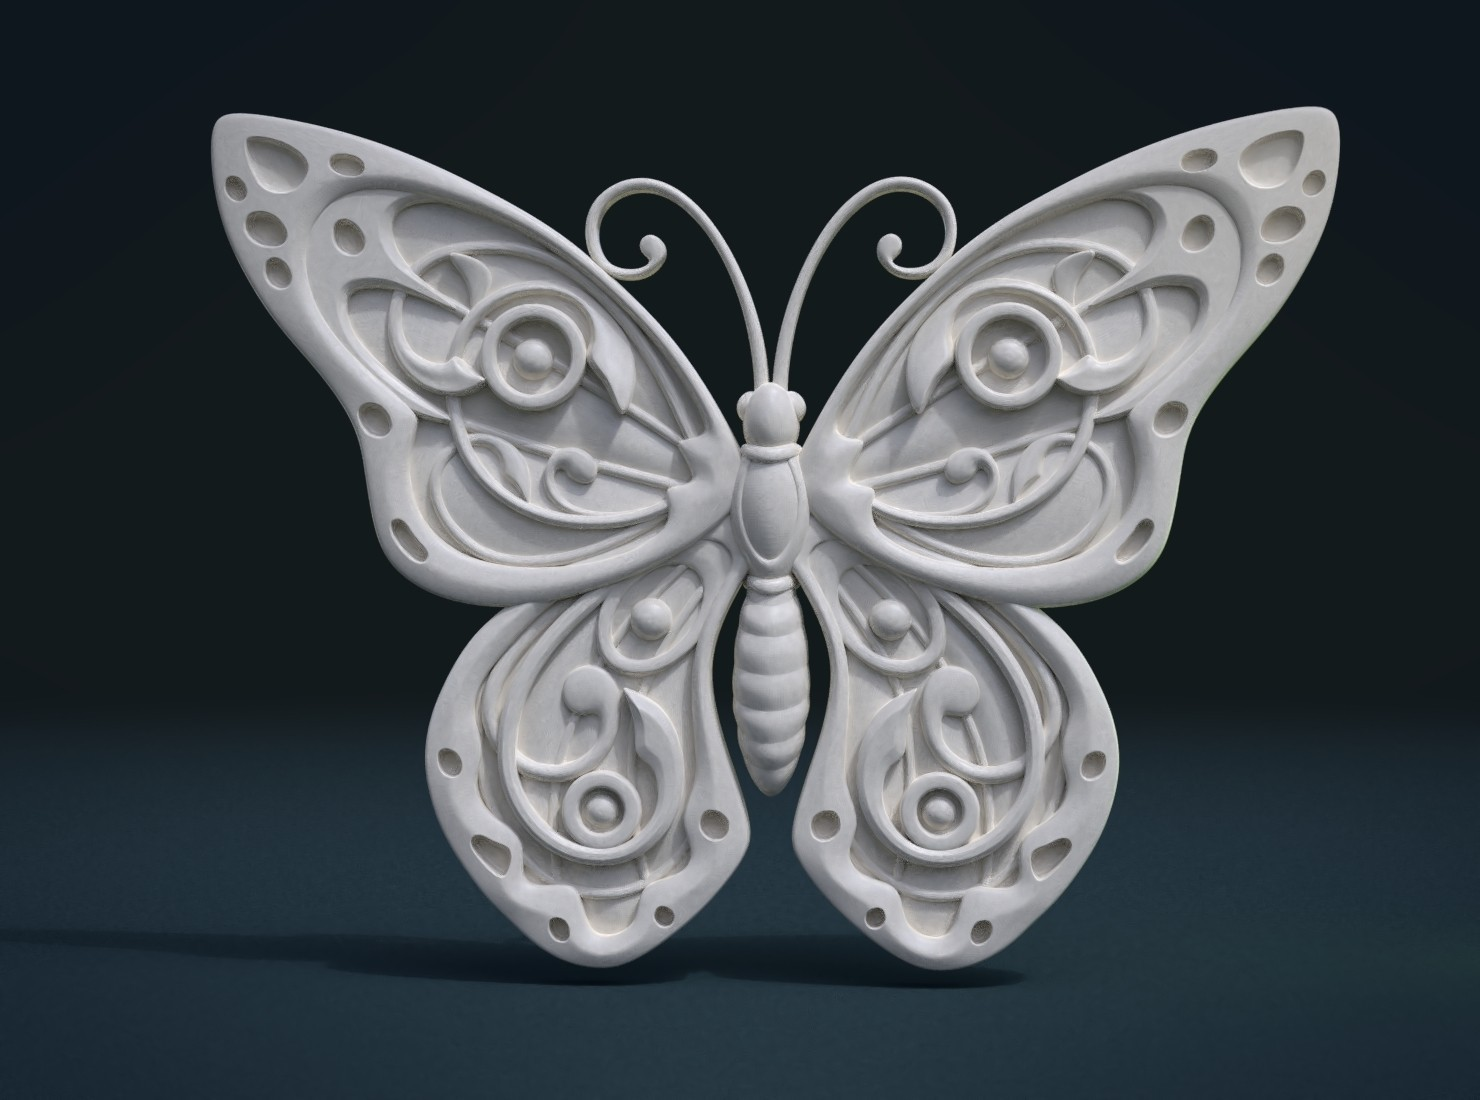 Butterfly_Cycles-0001.jpg Download STL file Butterfly relief • Model to 3D print, Skazok